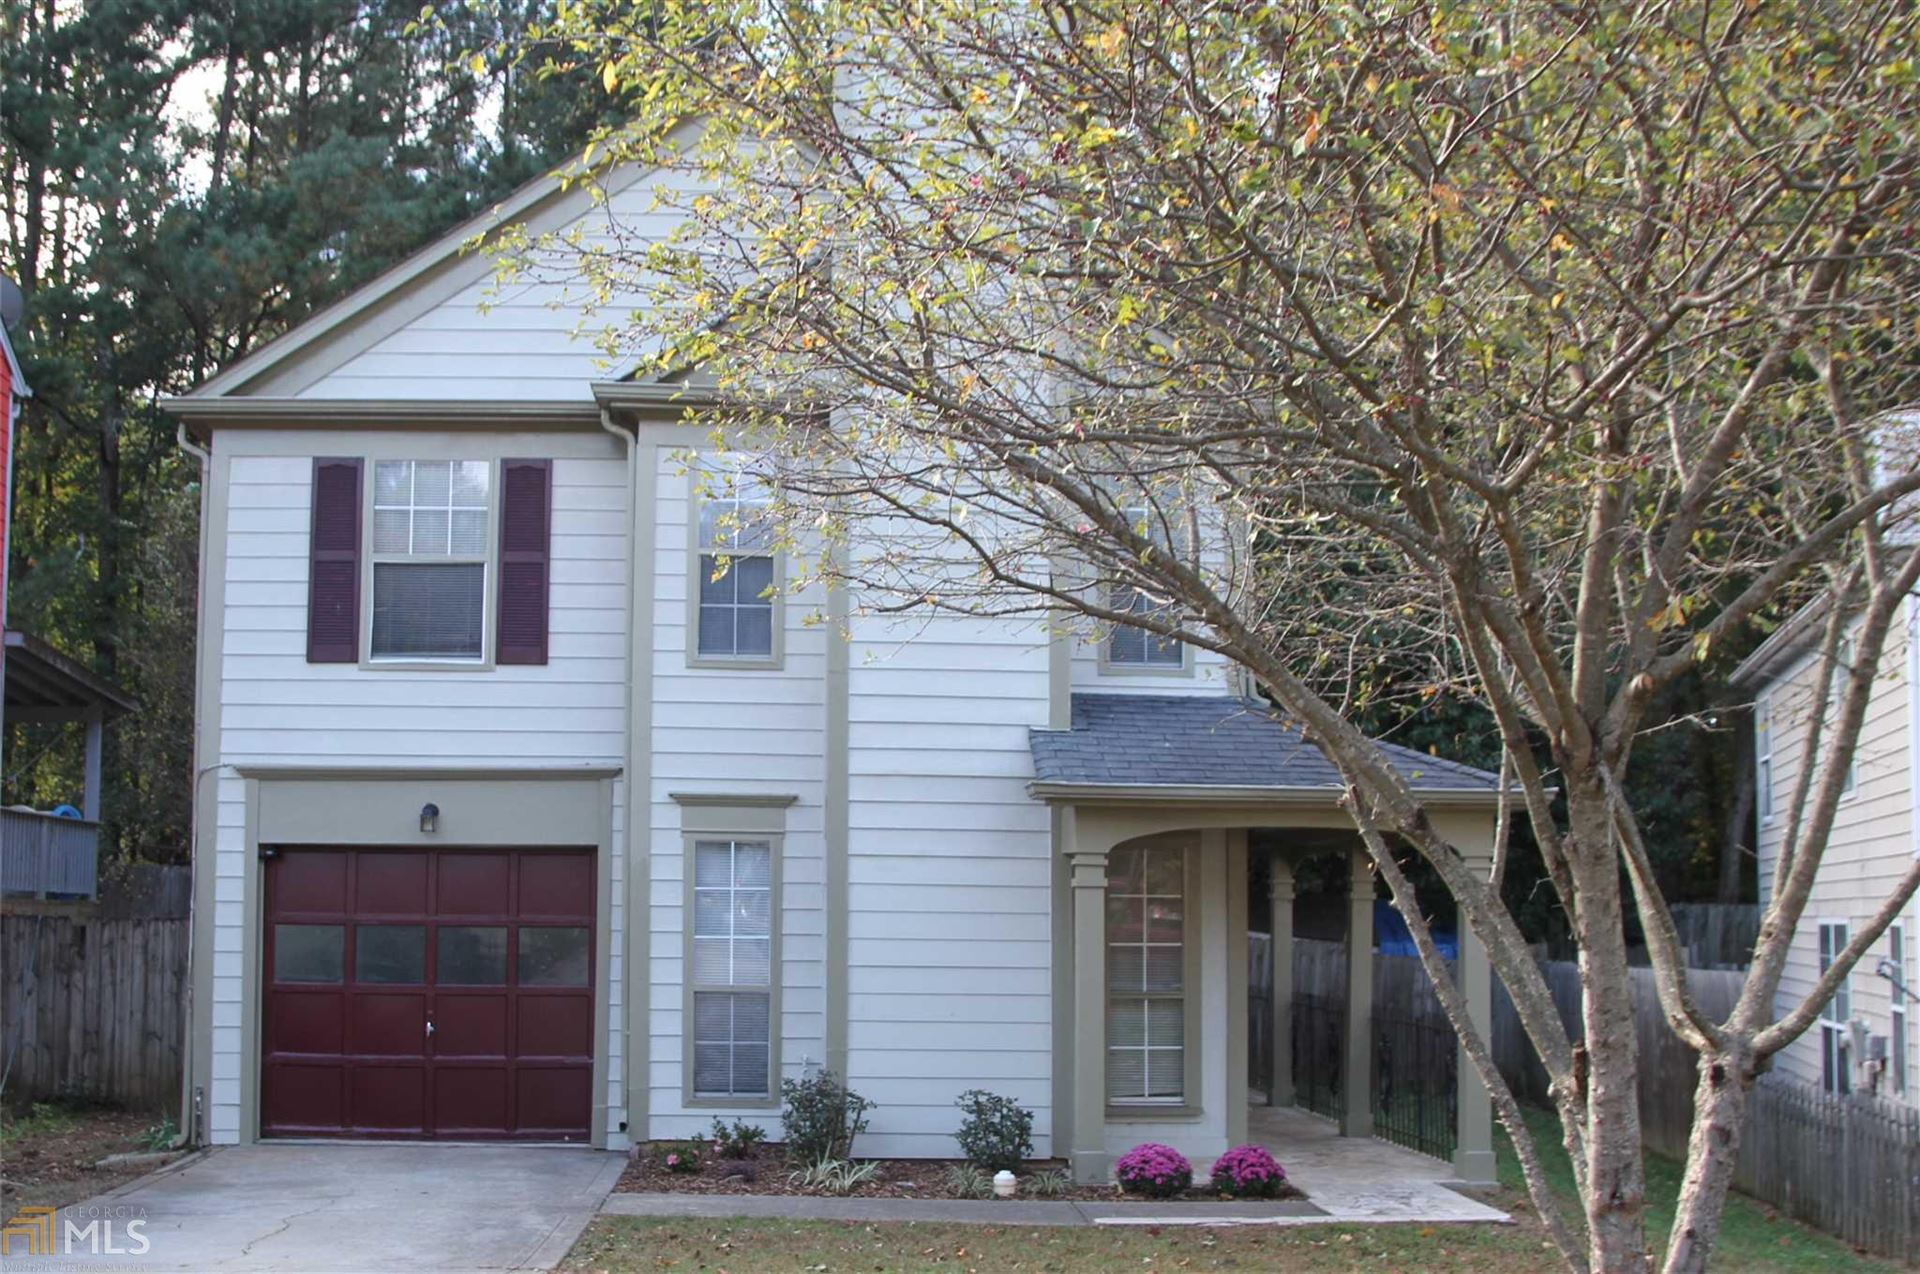 1290 Hampton Hill Ct, Lawrenceville, GA 30044 - MLS#: 8882473